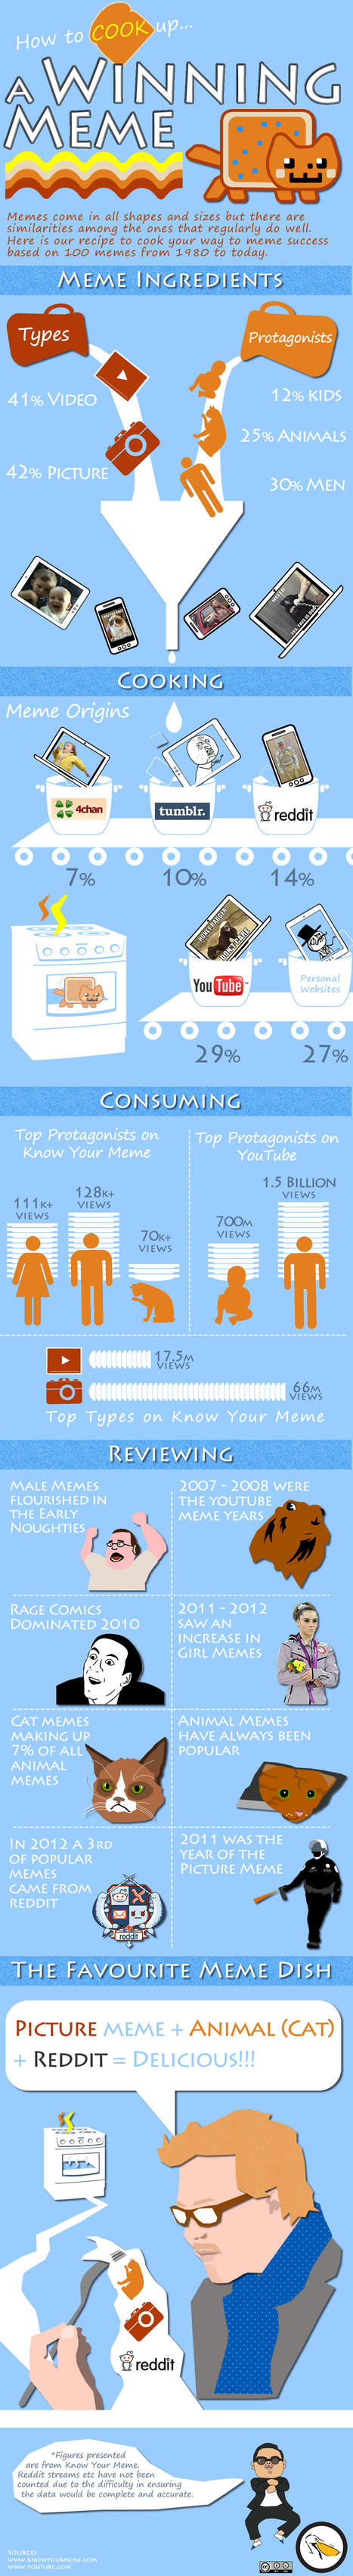 How to Create a Winning Meme [INFOGRAPHIC]   Docentes y TIC (Teachers and ICT)   Scoop.it